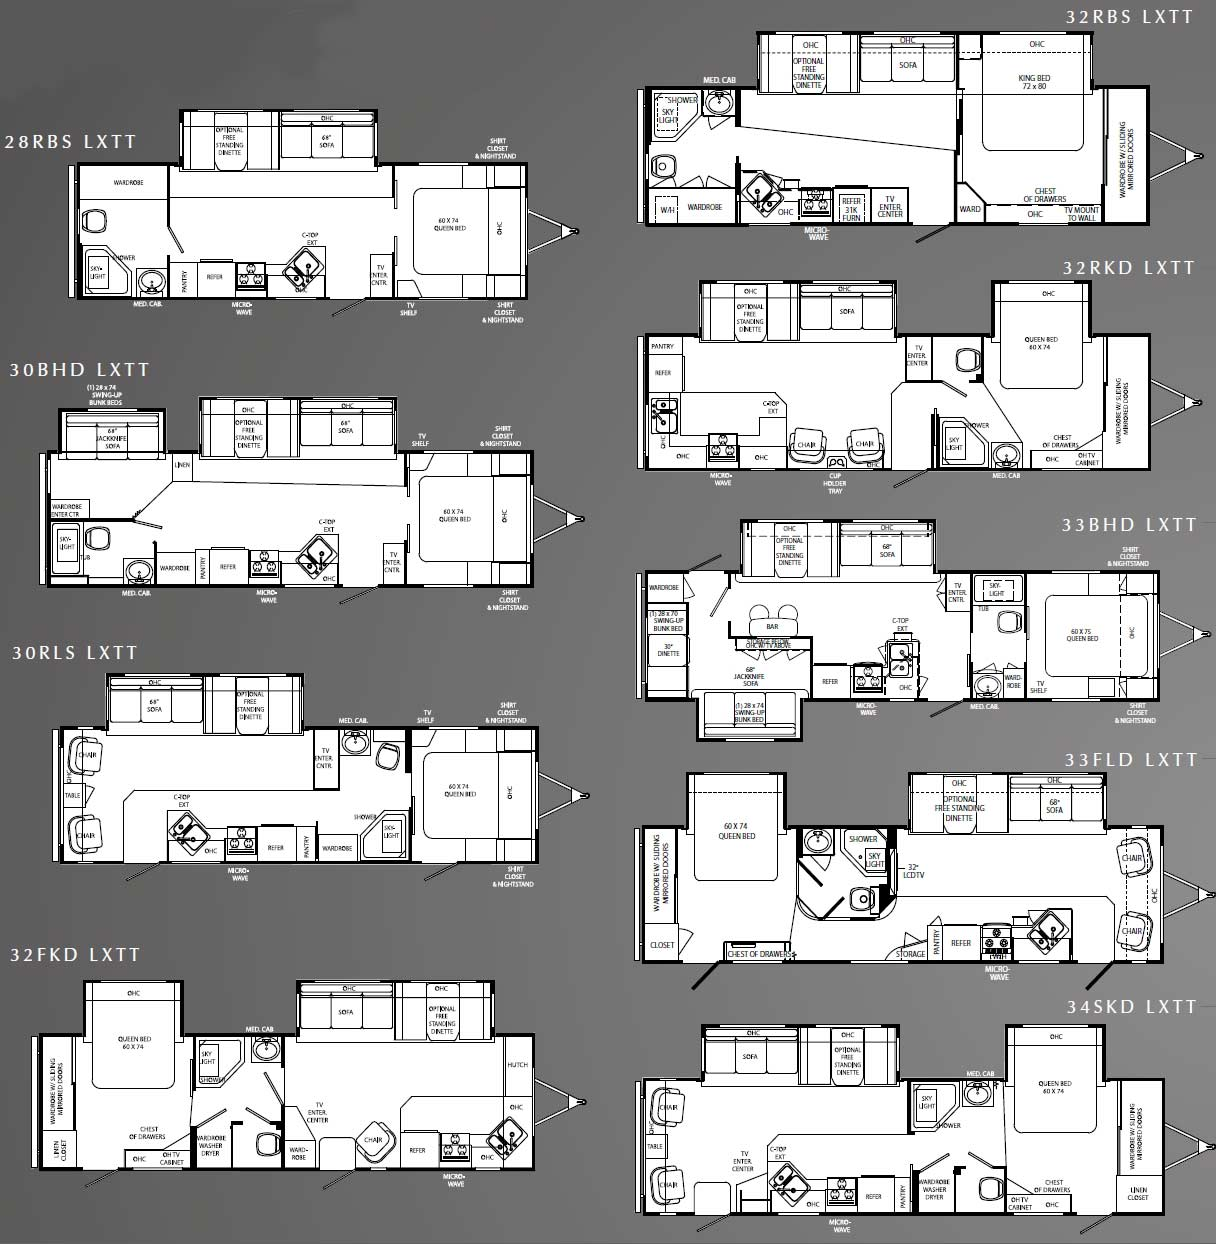 Fleetwood Terry Travel Trailer Floor Plan